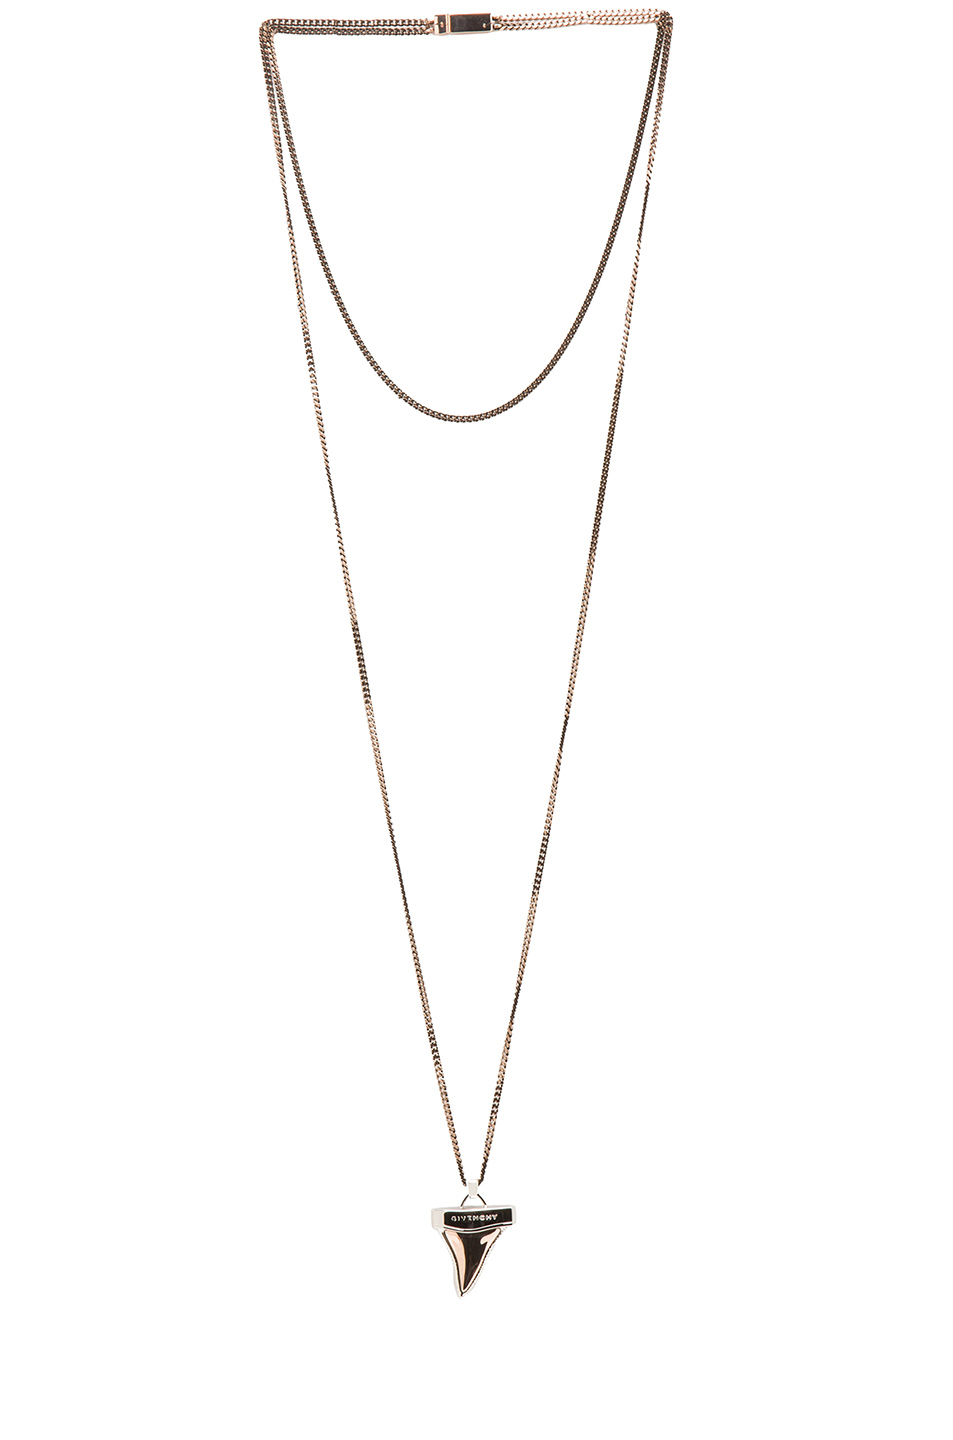 GIVENCHY|Small Shark Tooth Necklace in Old Pink & Silver